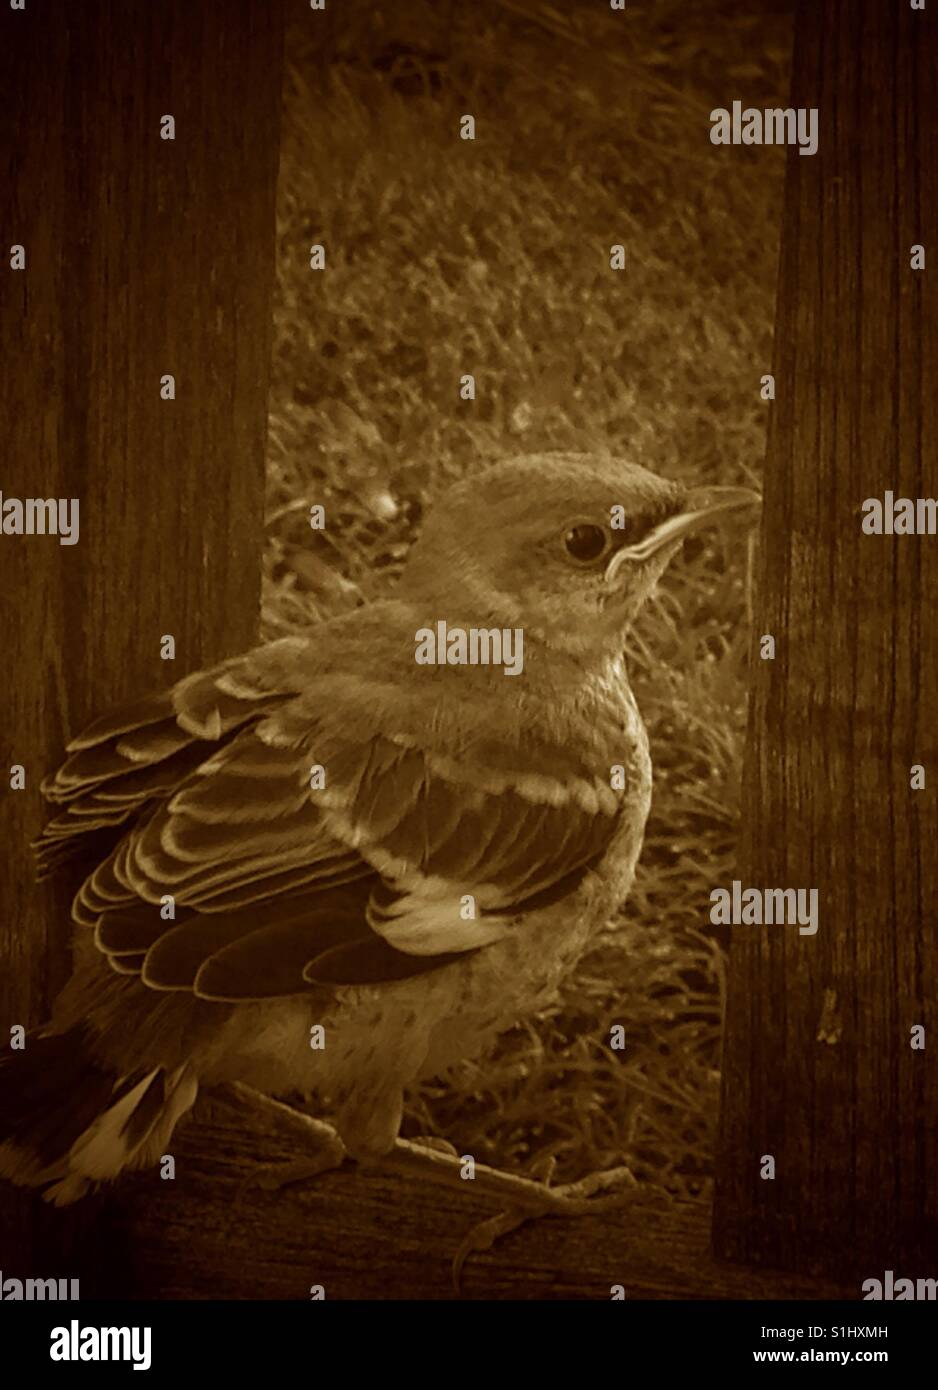 A mocking bird rests in a window seal, sepia filter. - Stock Image